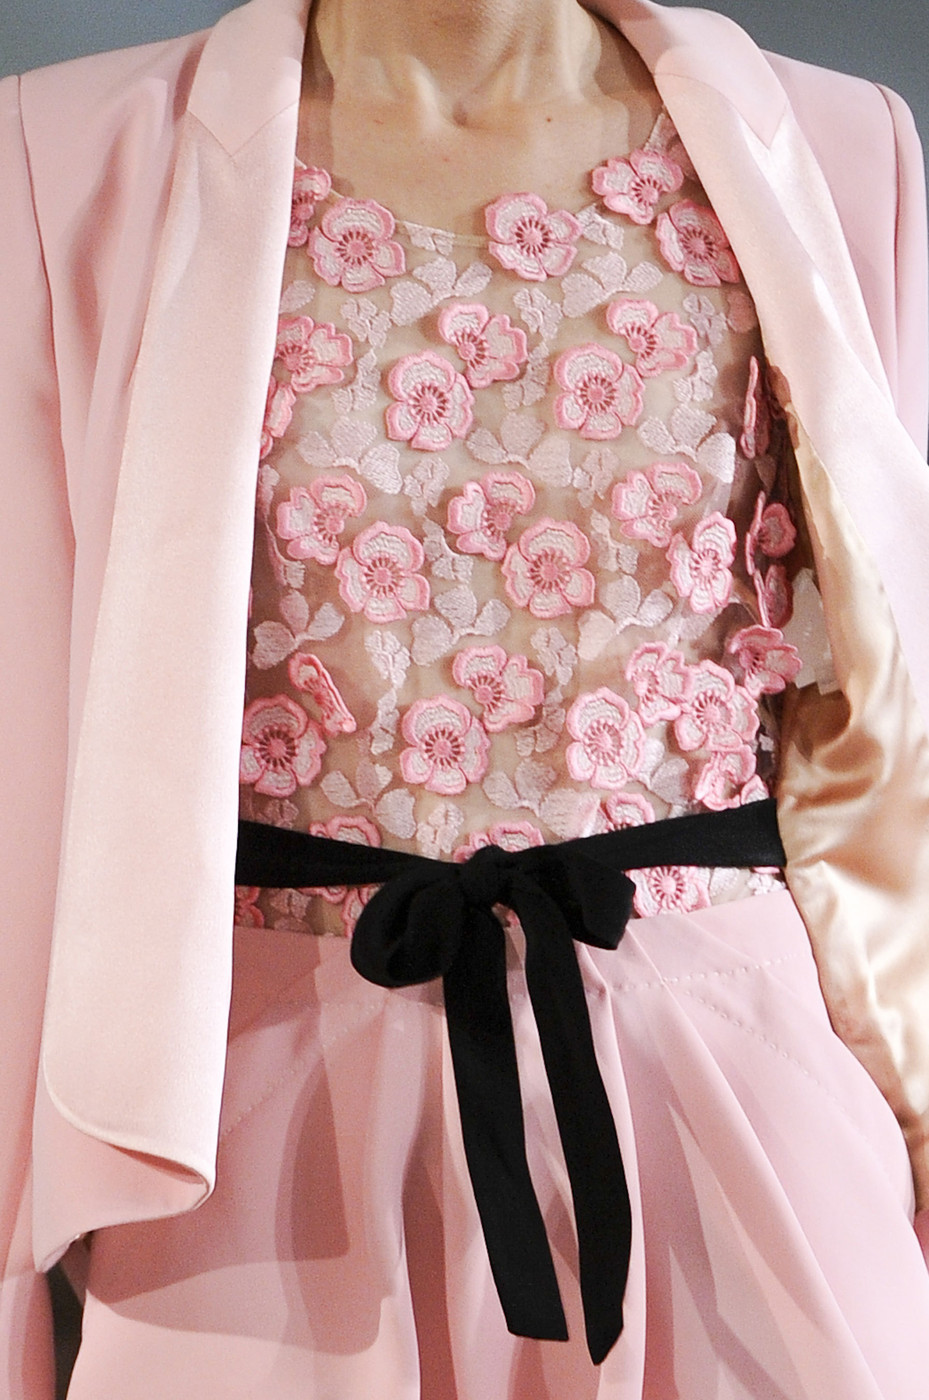 Alexis Mabille Spring/Summer 2013